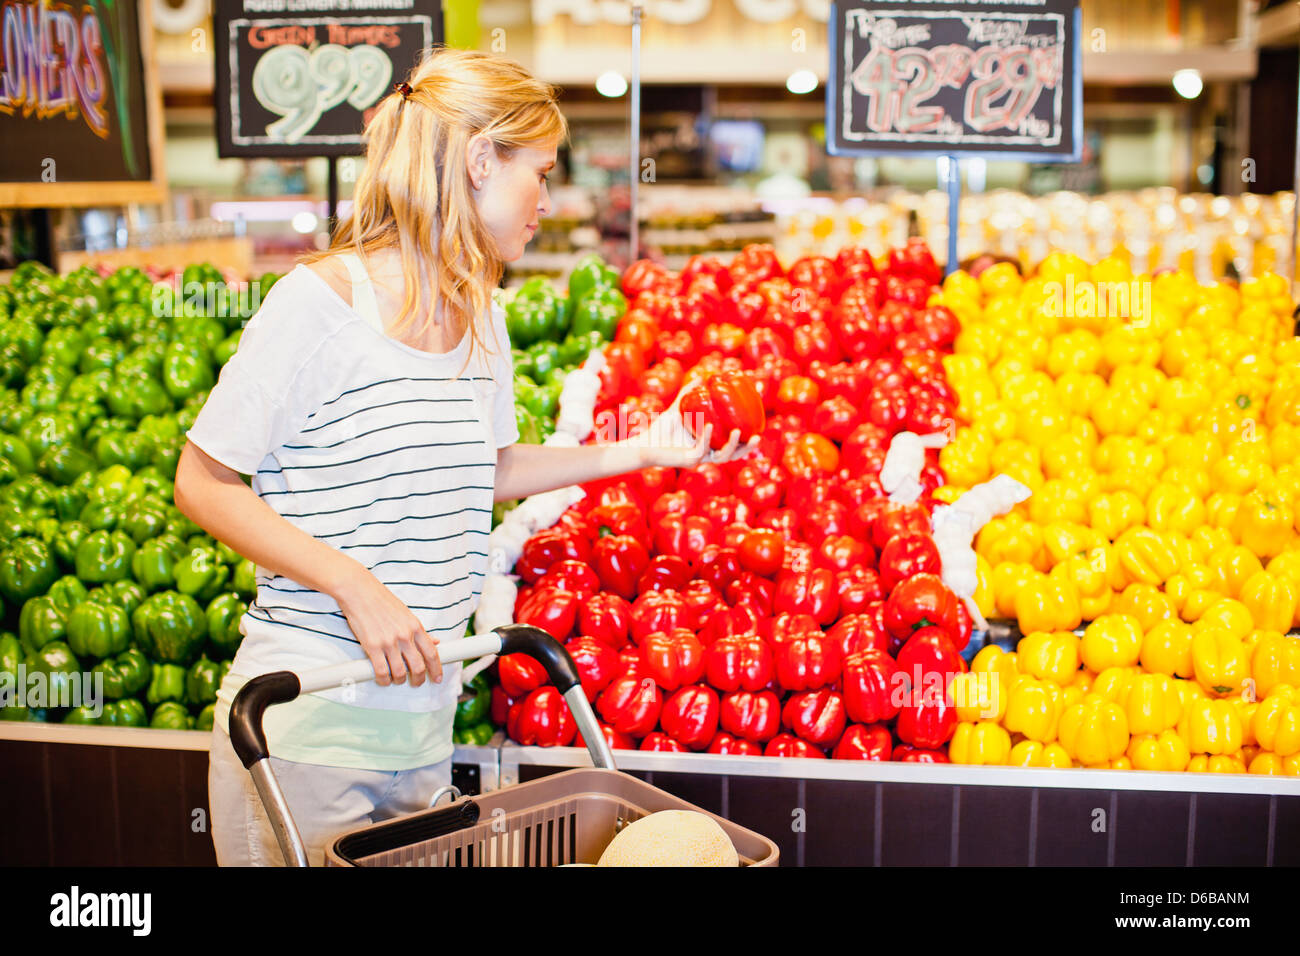 Woman shopping in grocery store - Stock Image